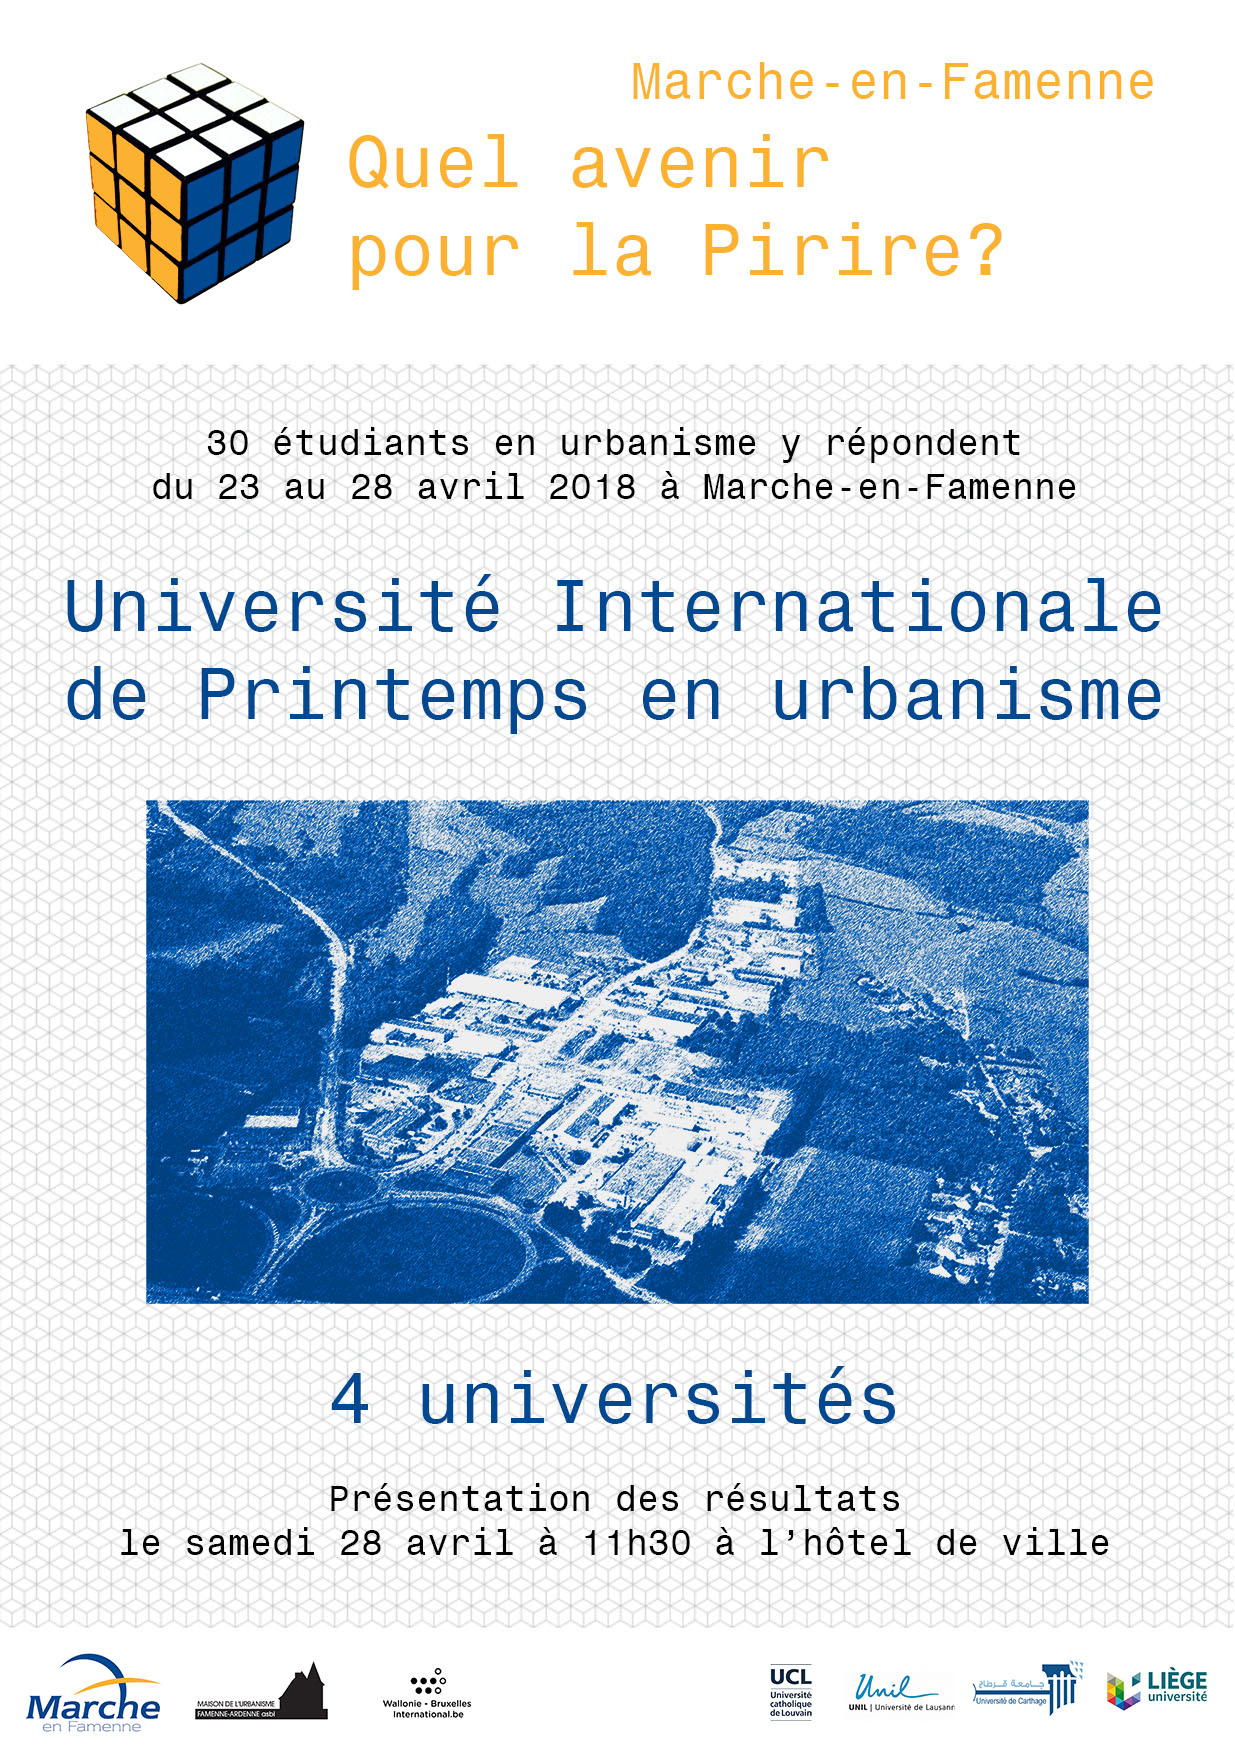 Université Internationale de Printemps en urbanisme